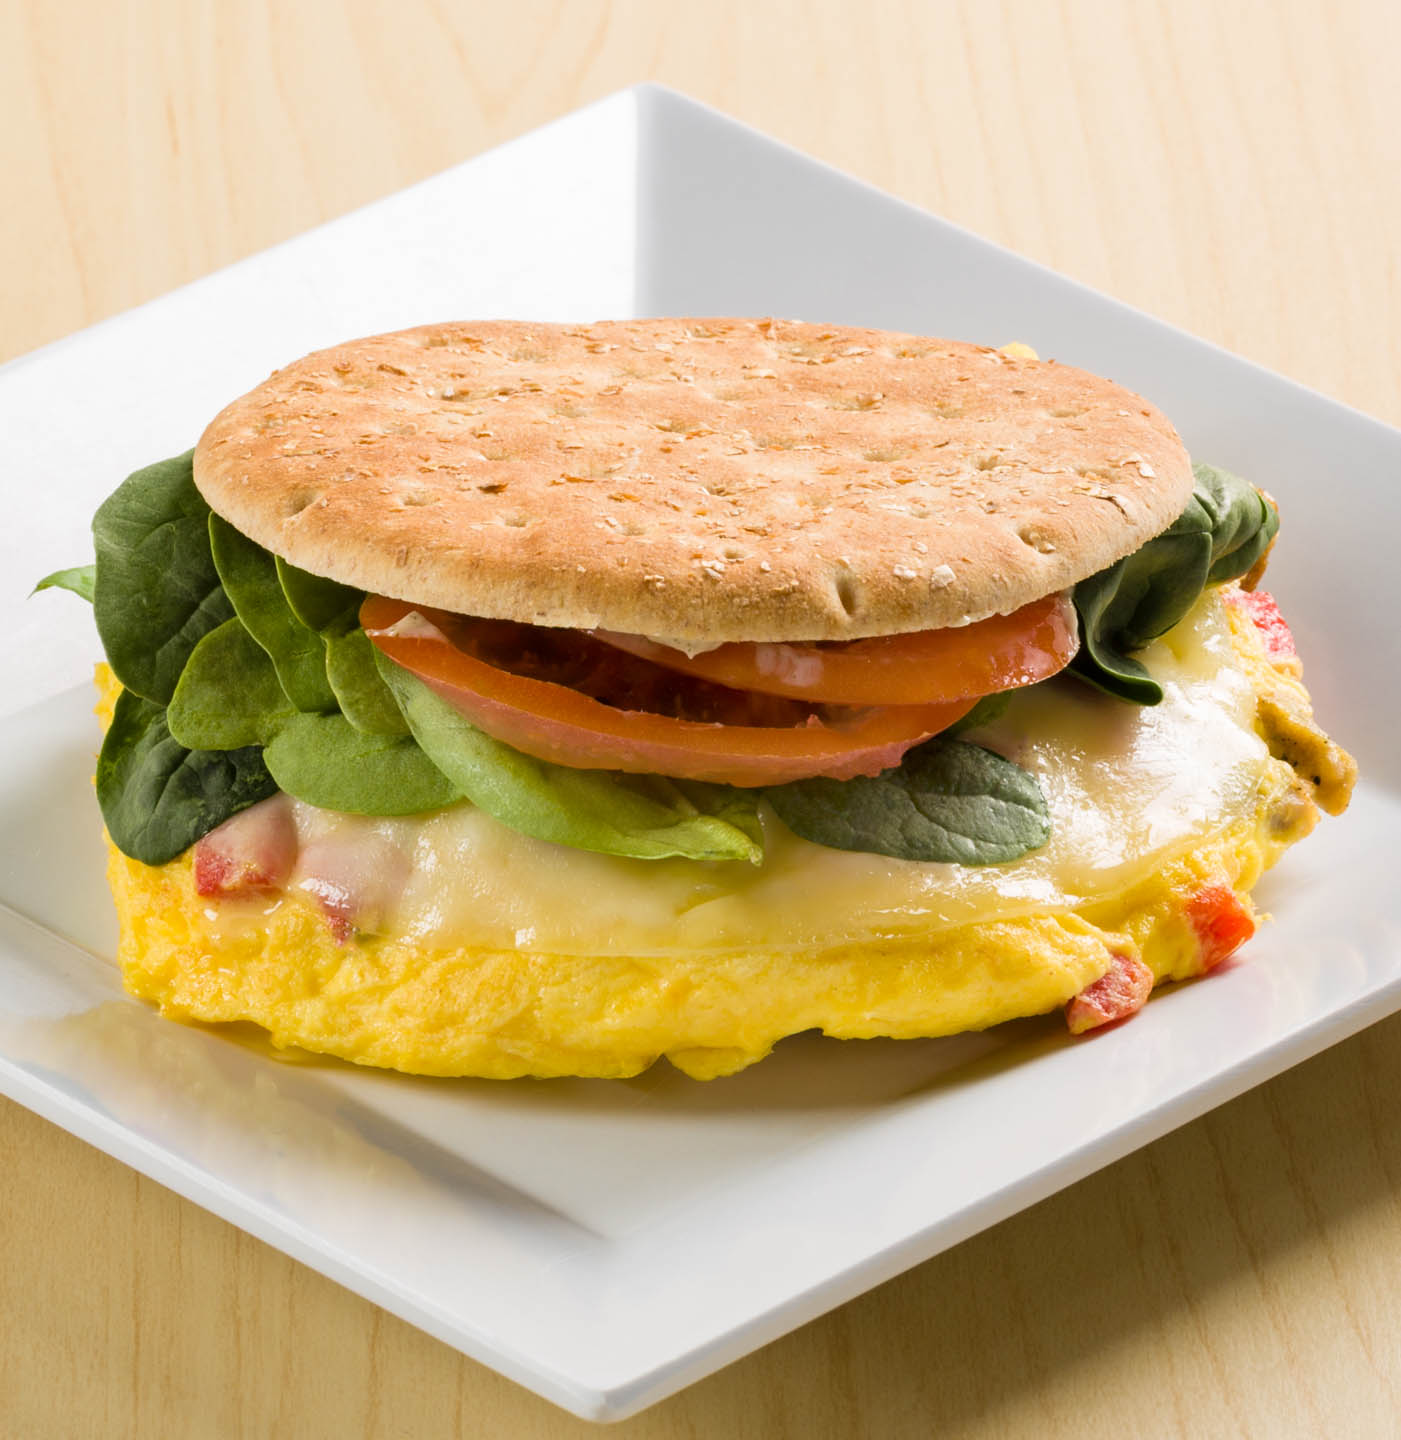 Country breakfast thinner sandwich